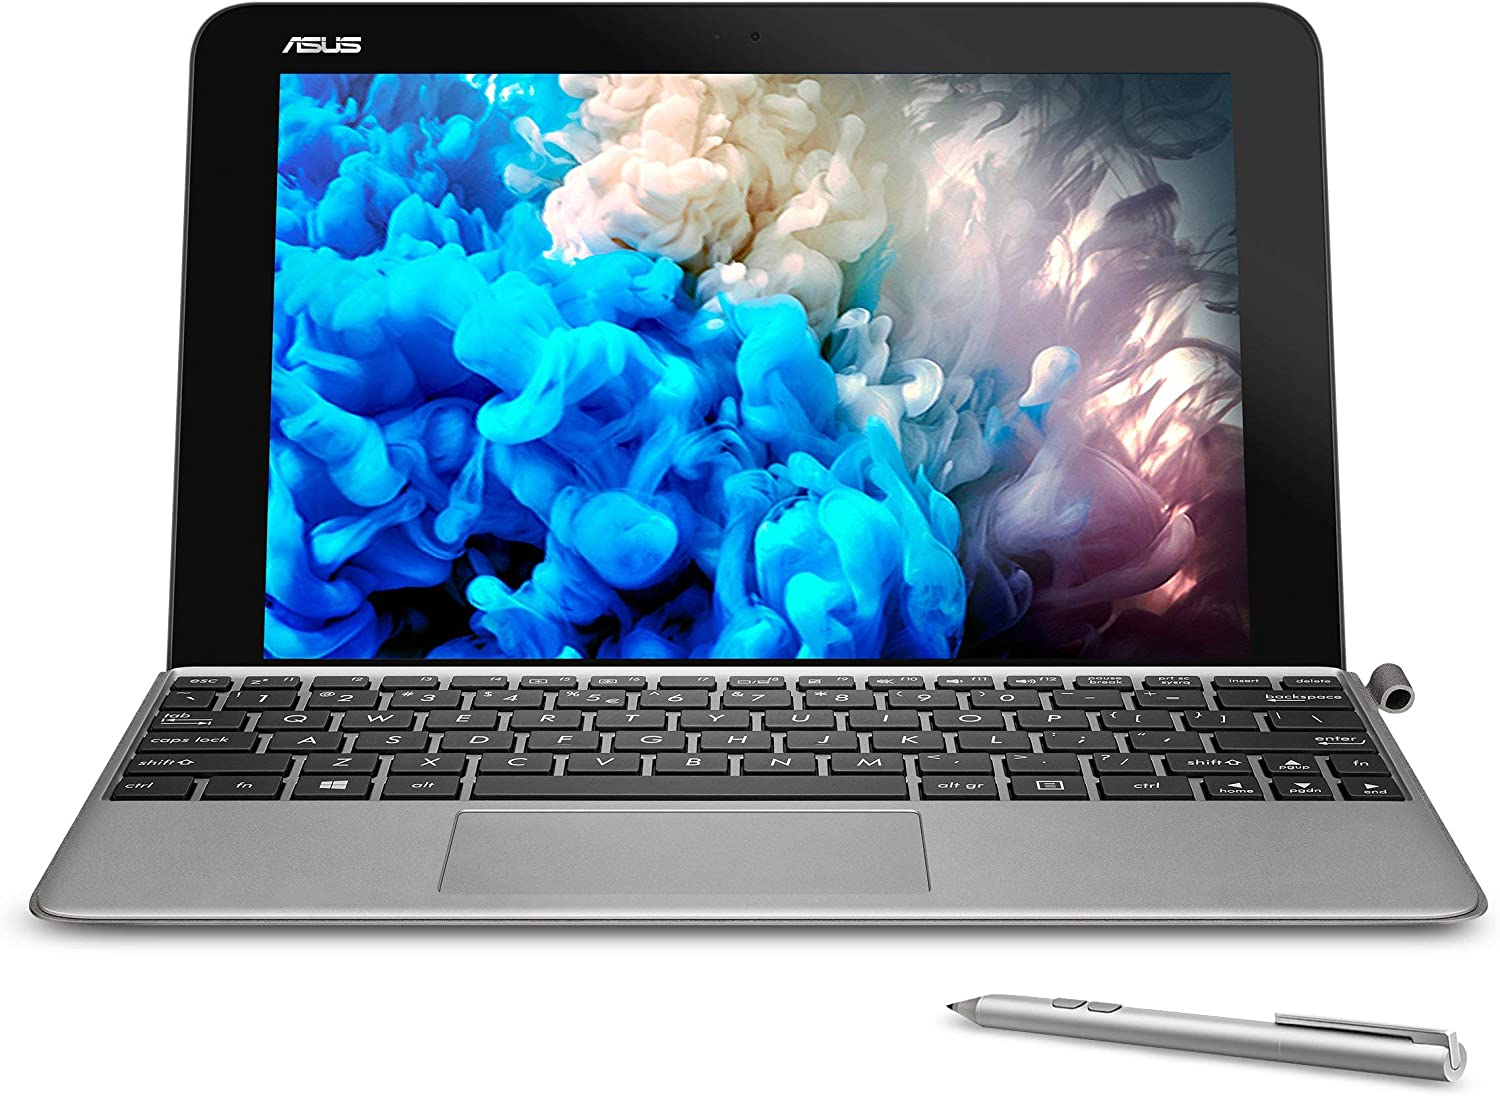 """ASUS 10.1"""" Transformer Mini T103HA-D4-GR, 2 in 1 Touchscreen Laptop, Intel Quad-Core, 128GB SSD, Grey, pen and keyboard included (Renewed)"""